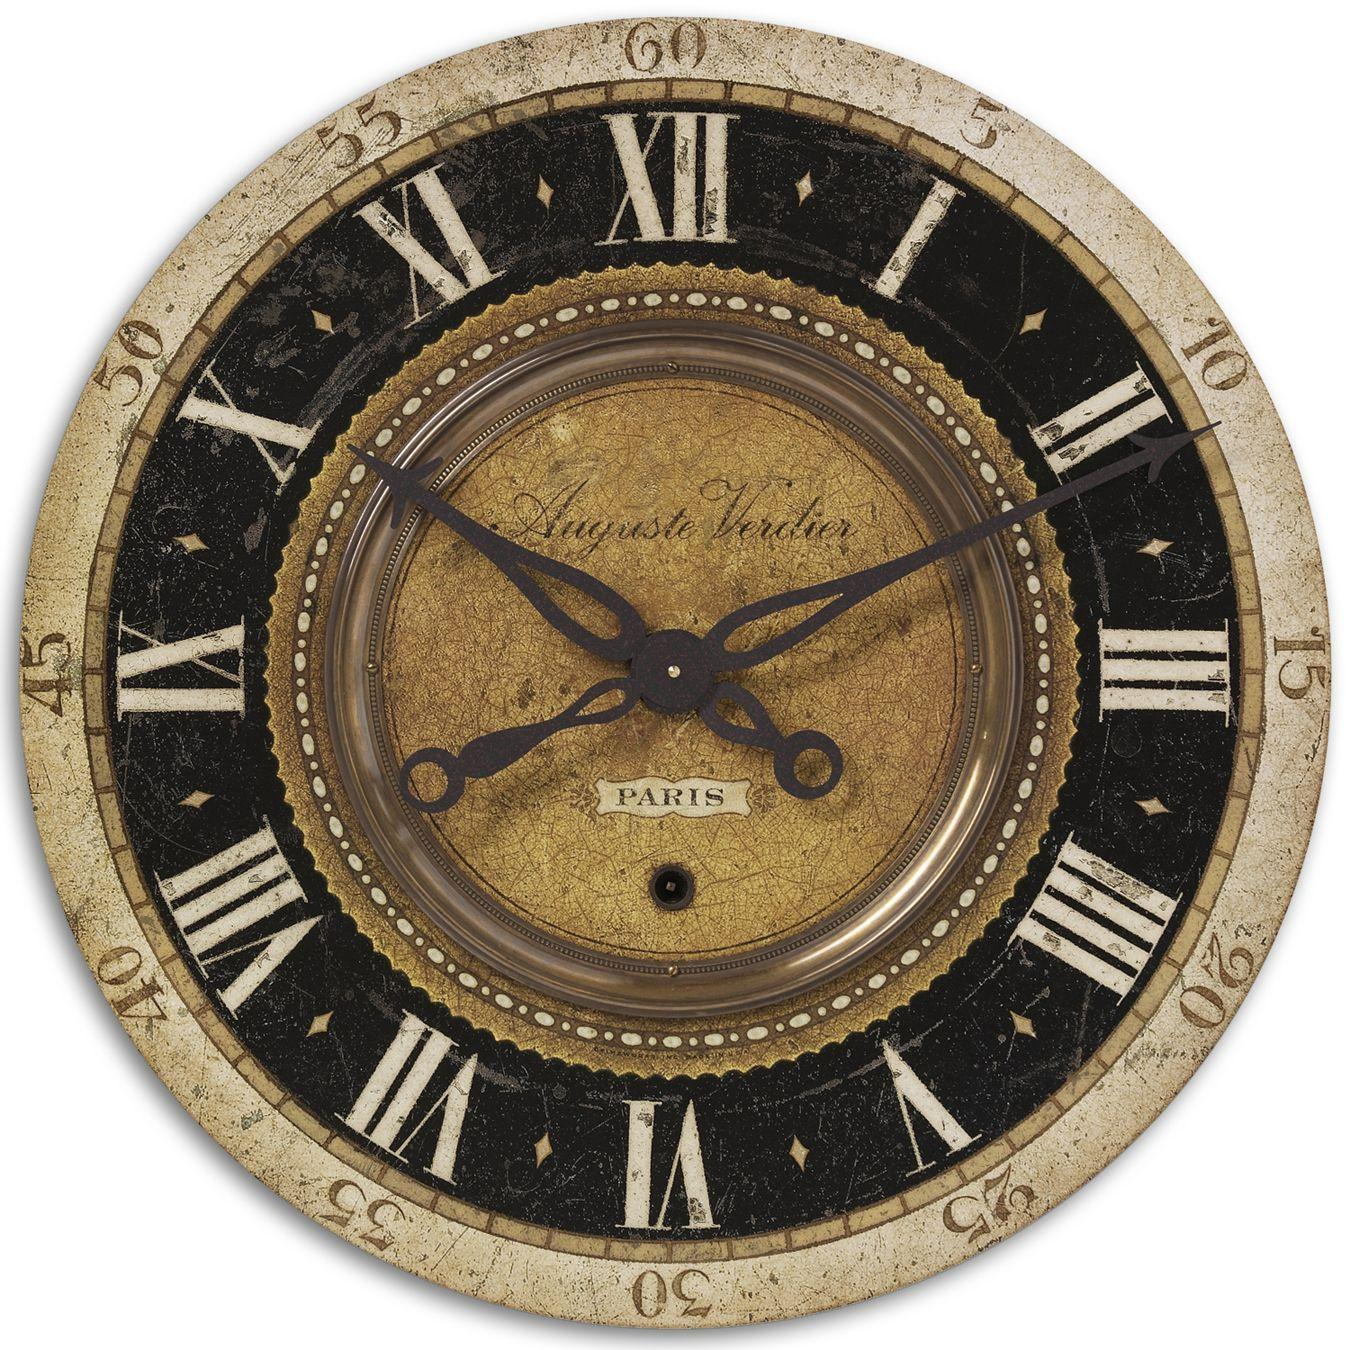 Uttermost Clocks Auguste Verdier Clock - Item Number: 06028